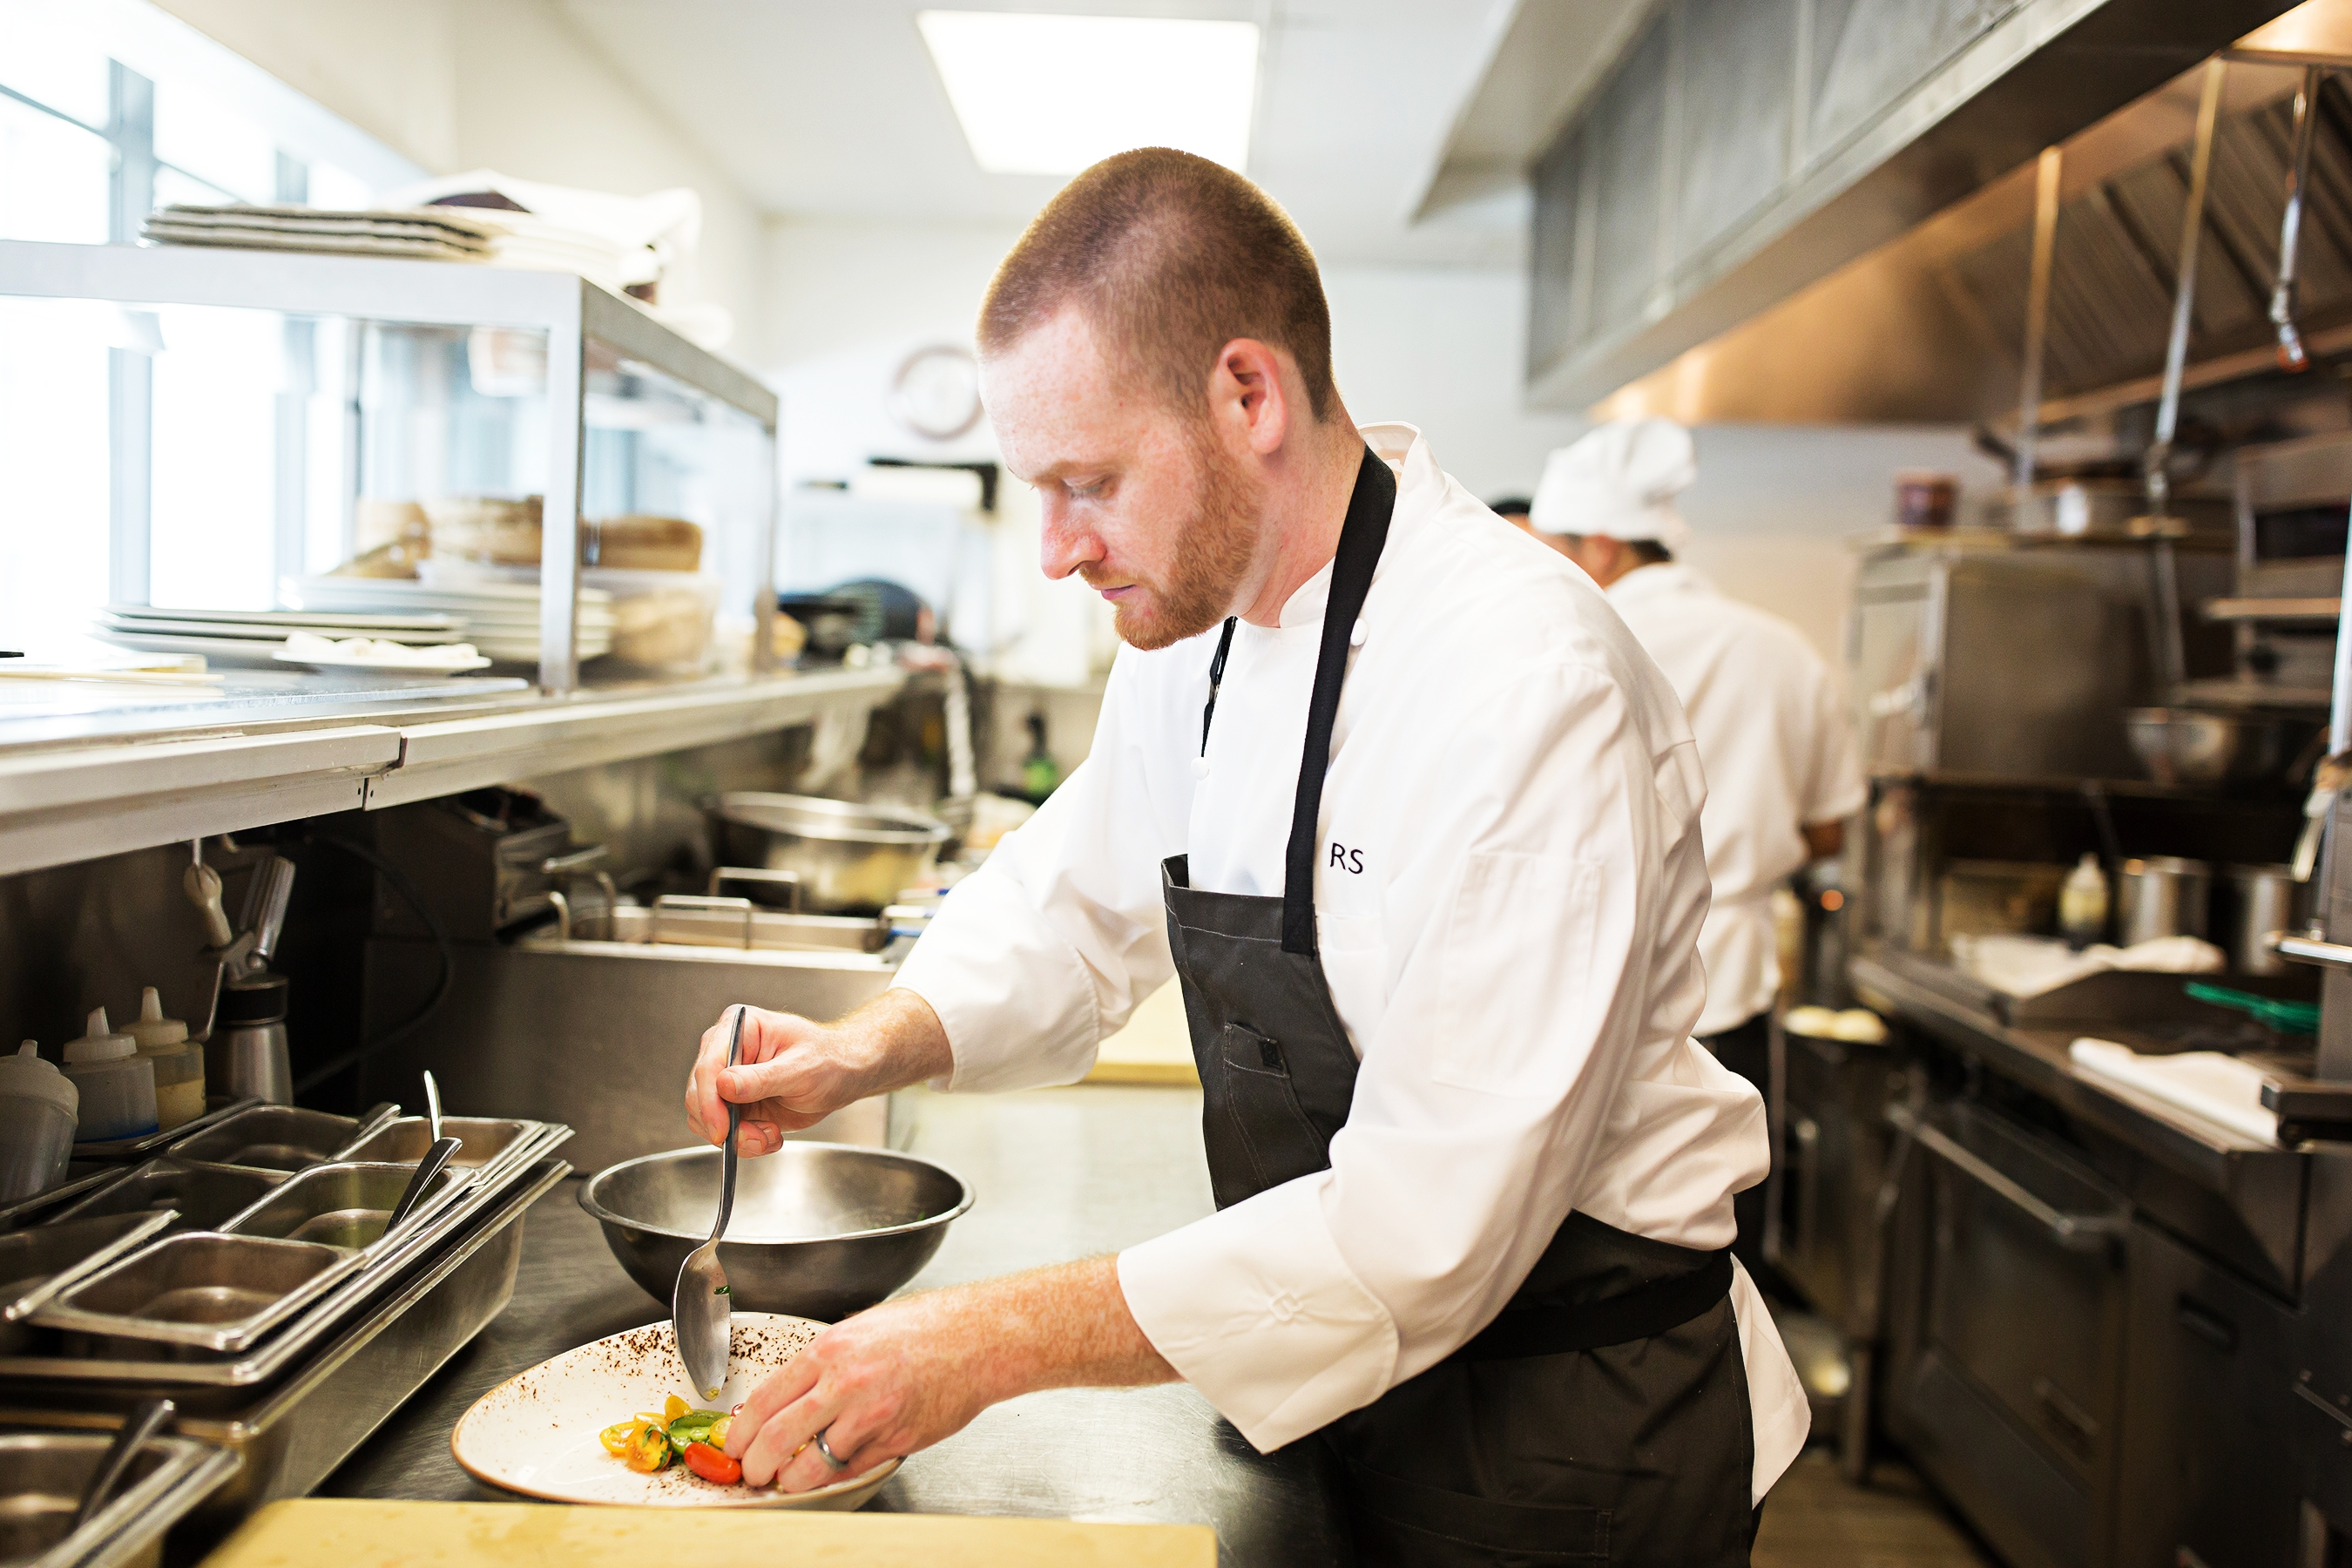 Russell Smith  is a finalist for Chef of the Year. (Image: Courtesy The Source)